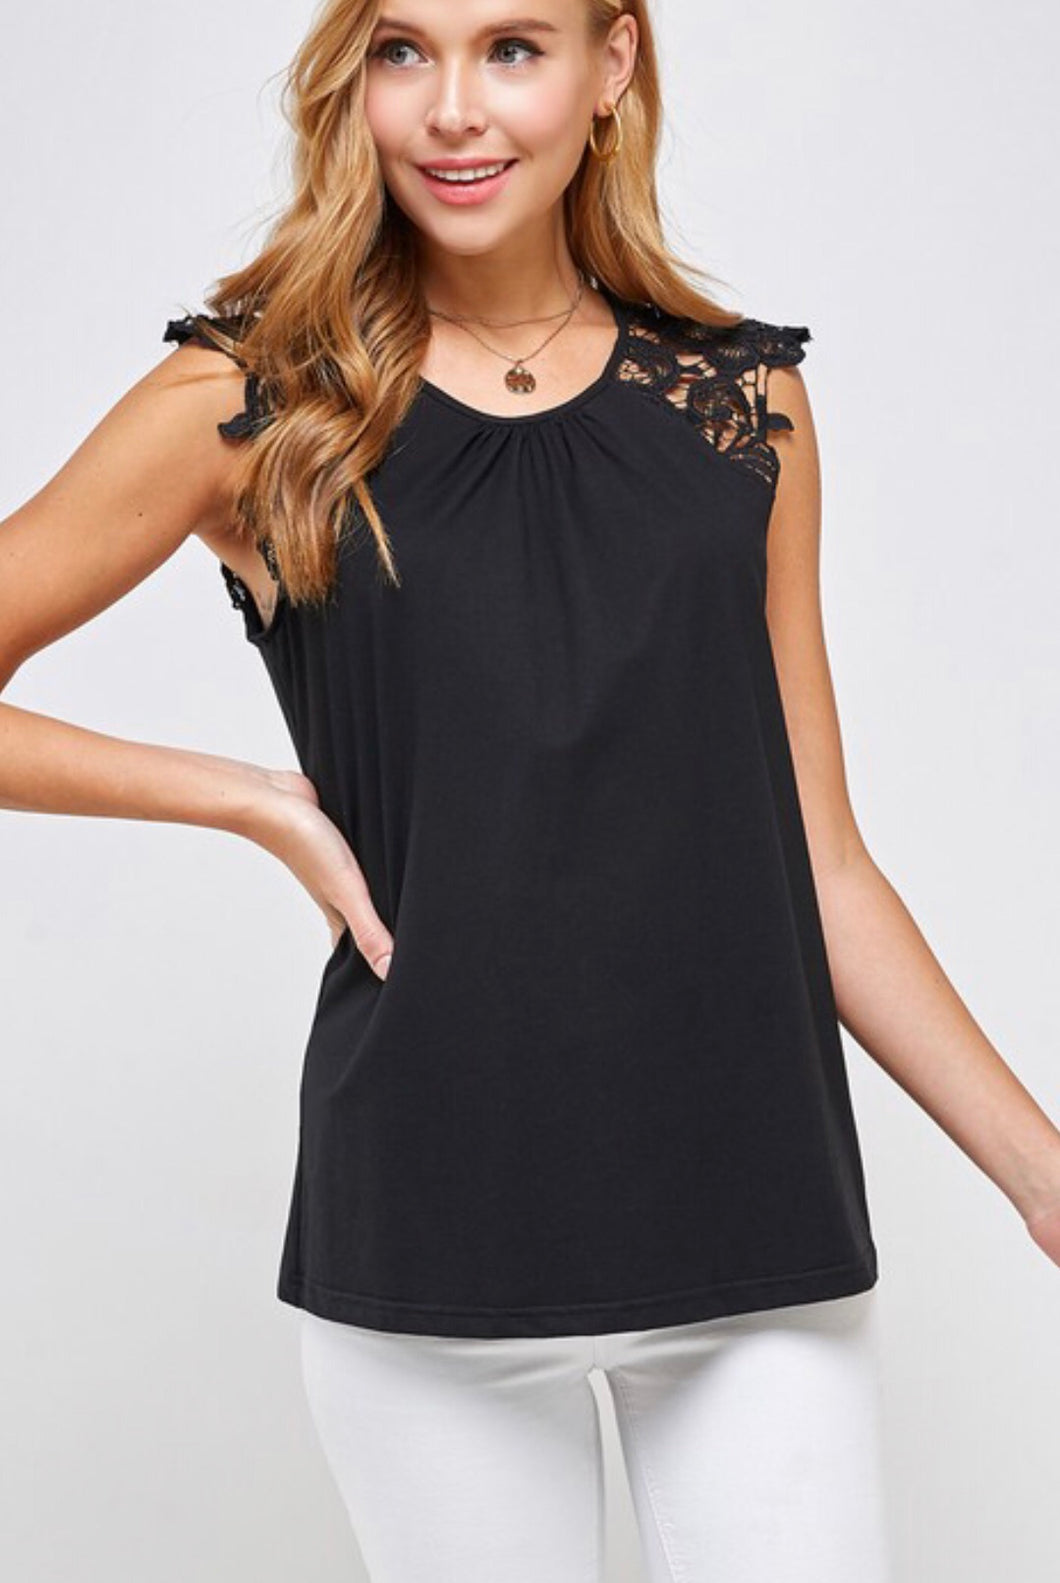 Black Sleeveless Top with Crochet Detail